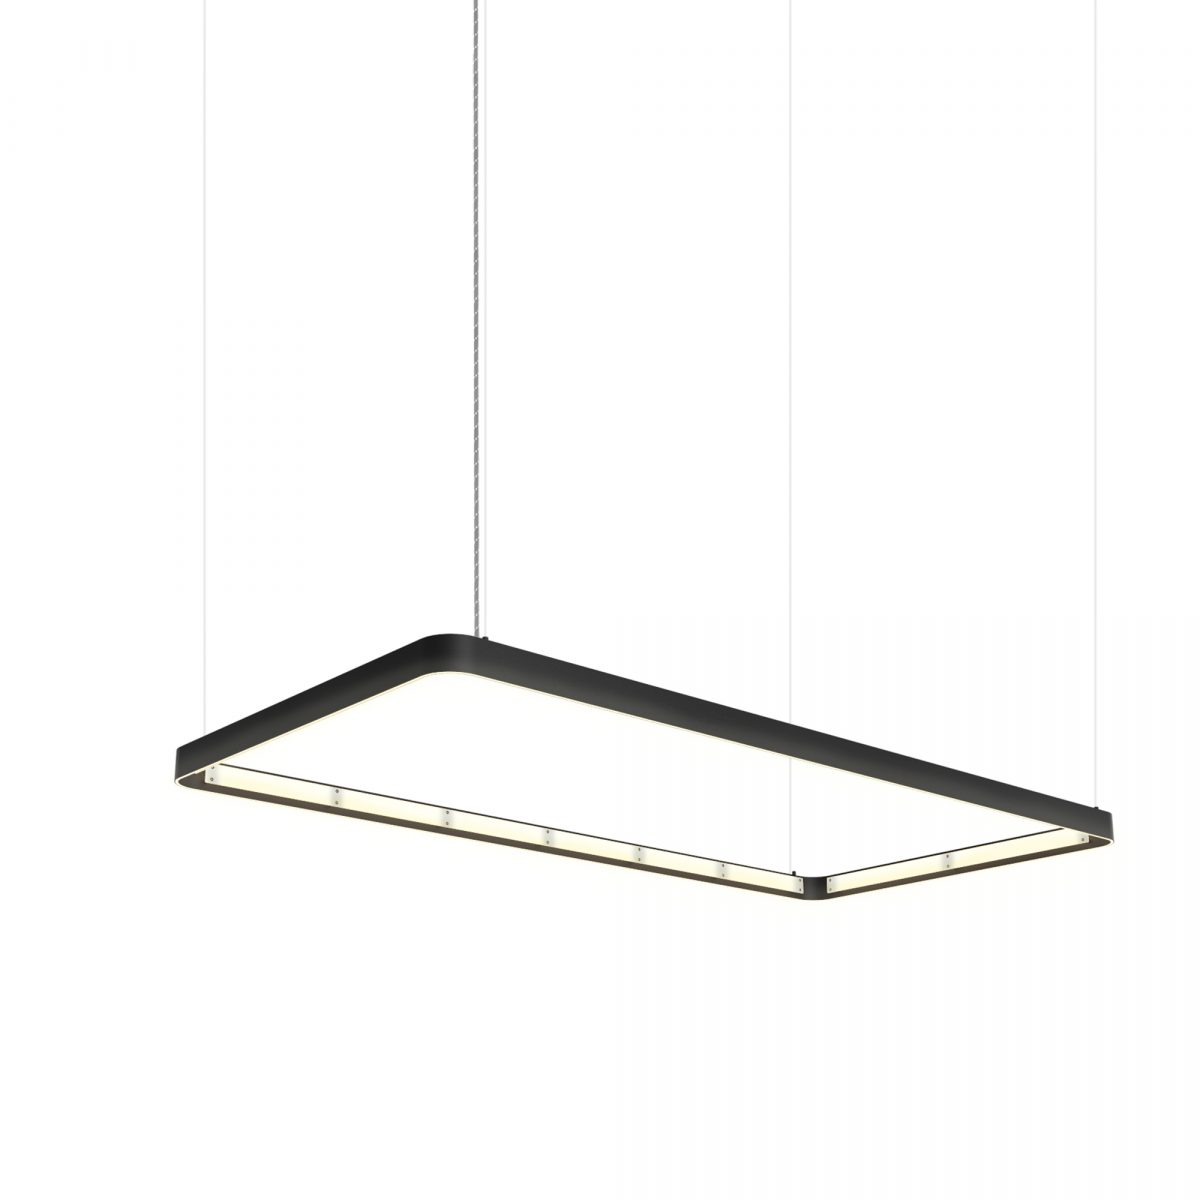 JSPR Eden Deco 75×150 Black Rectangle